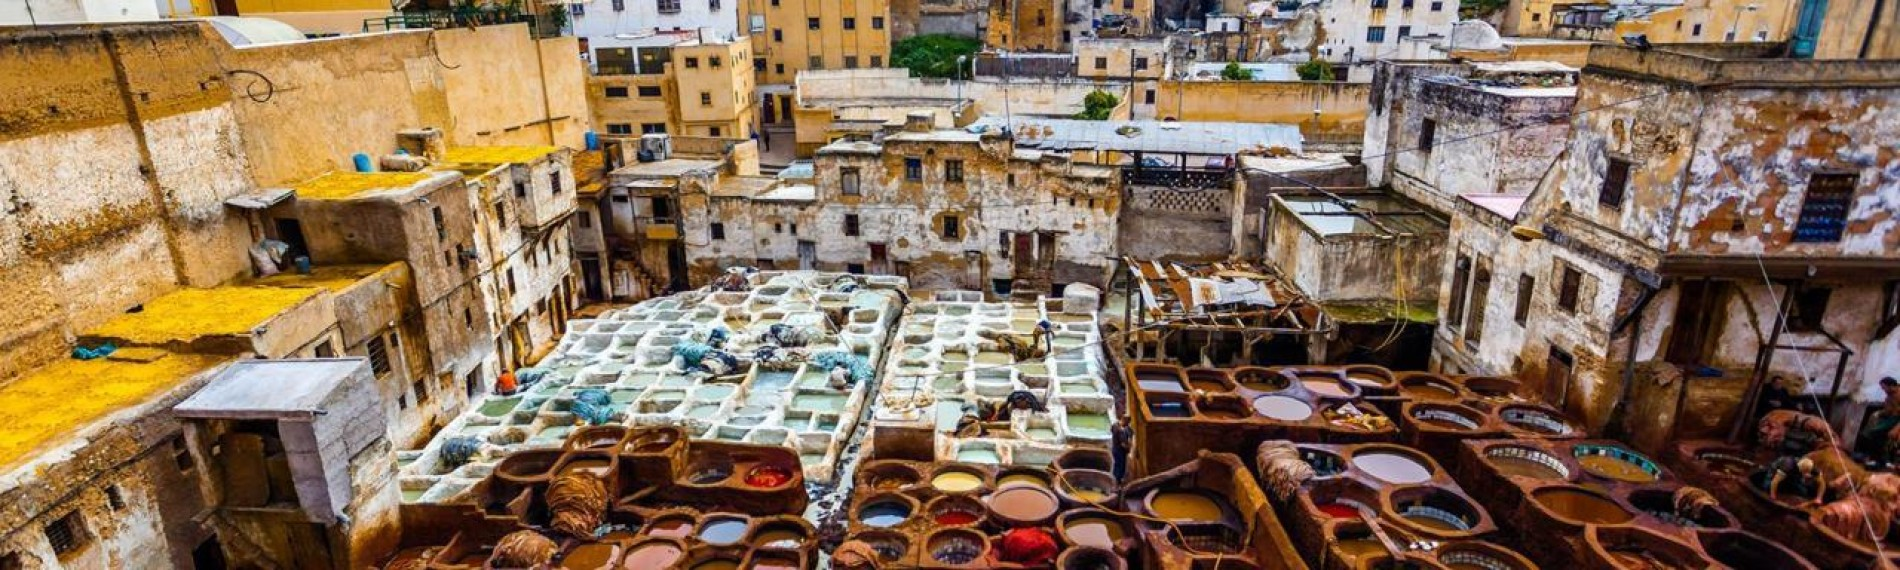 3 days tour to Morocco from Spain